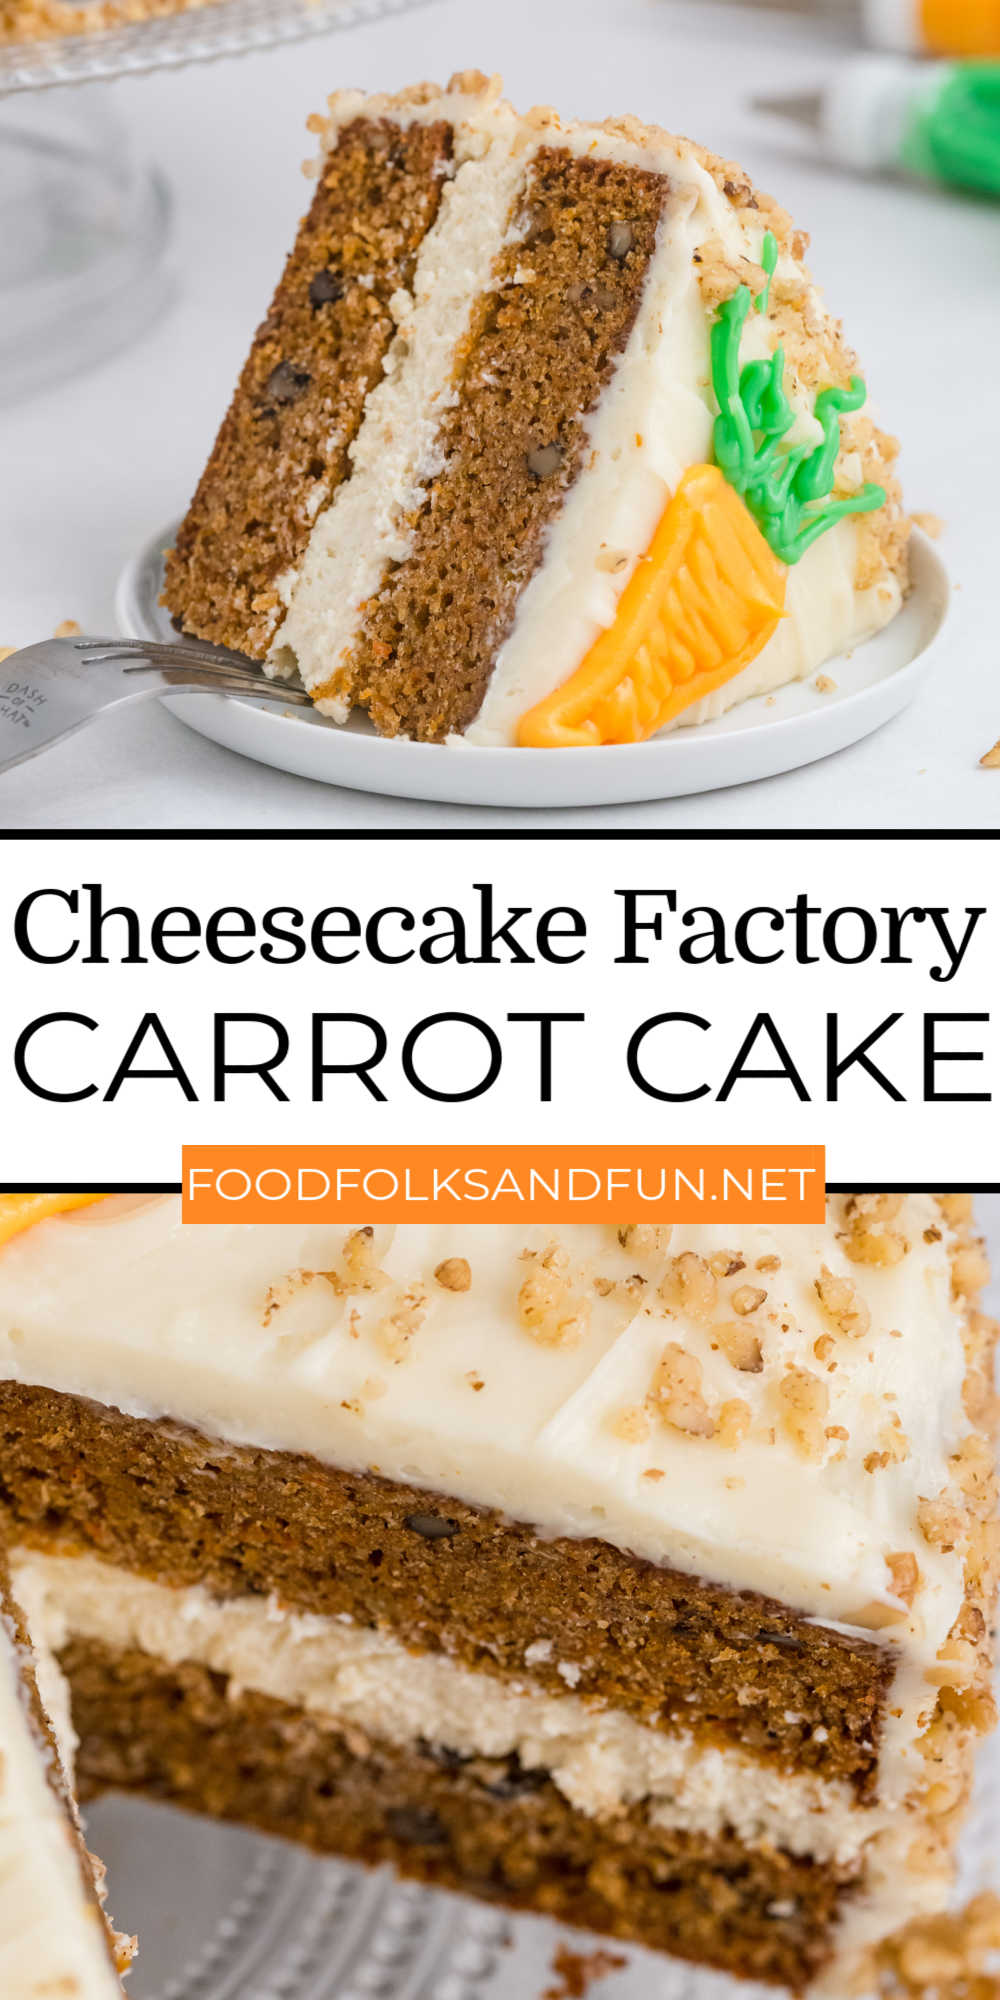 Cheesecake Factory Carrot Cake Cheesecake Copycat has two layers of delicious carrot cake, a layer of cheesecake, and is smothered in the best cream cheese frosting to make one glorious cake! via @foodfolksandfun